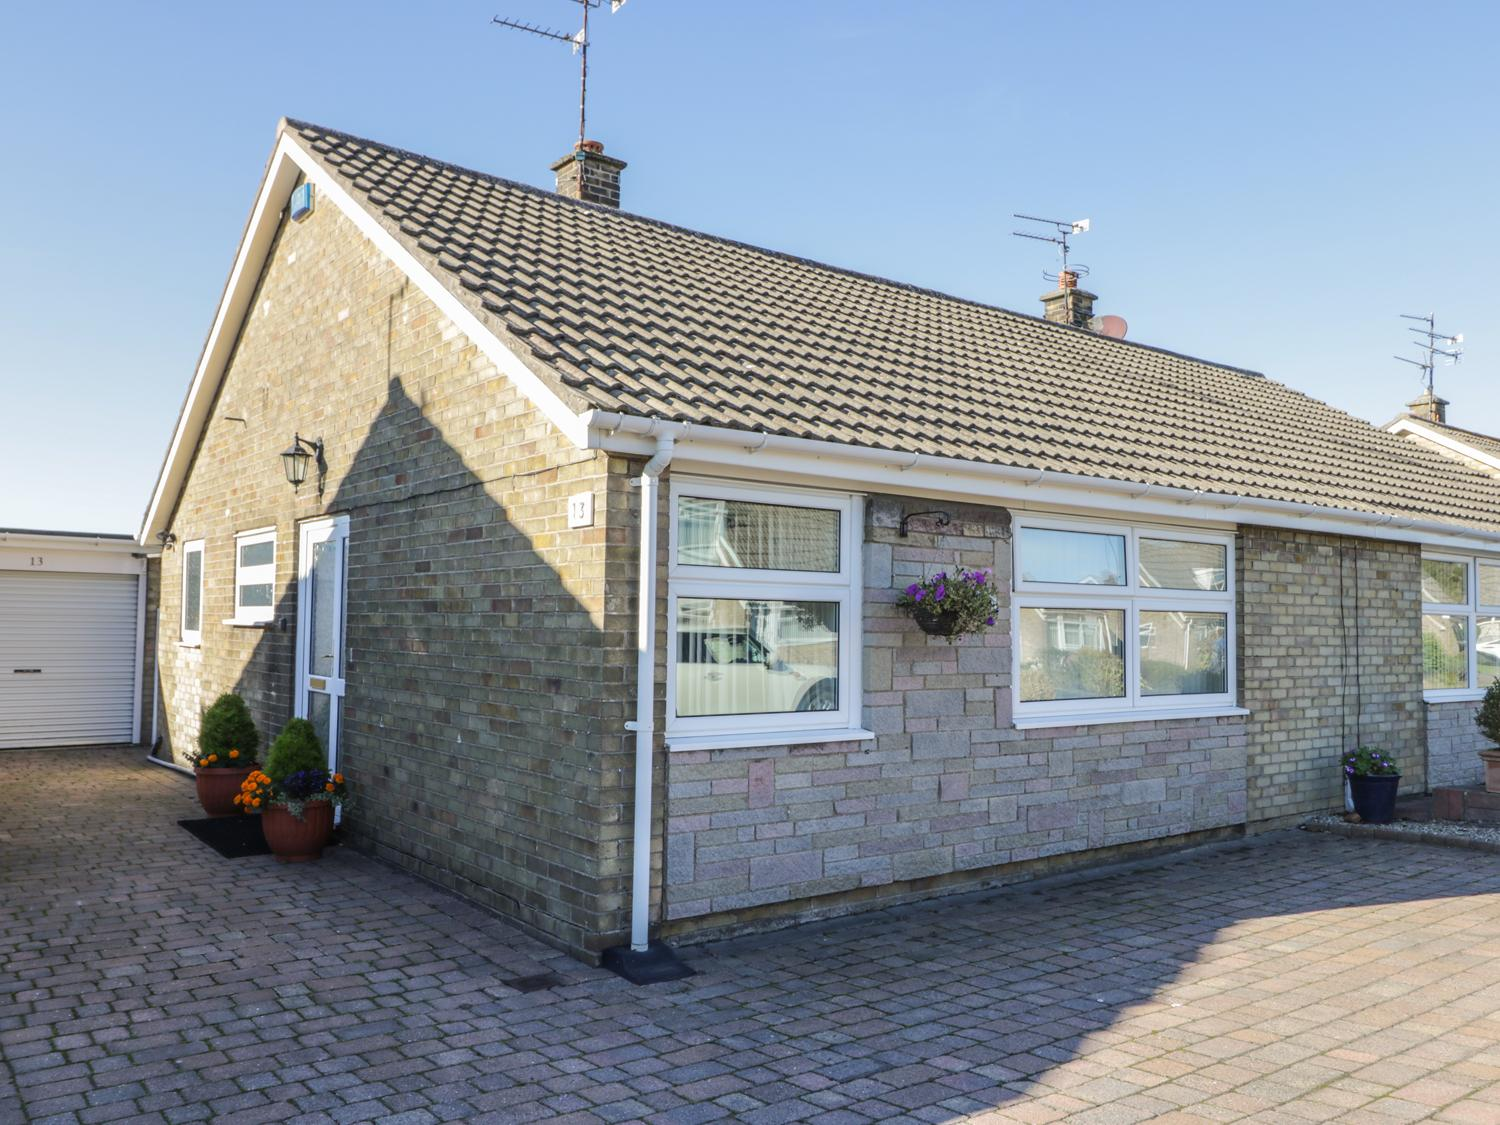 Holiday Cottage Reviews for 13 Danescroft - Holiday Cottage in Bridlington, East Yorkshire